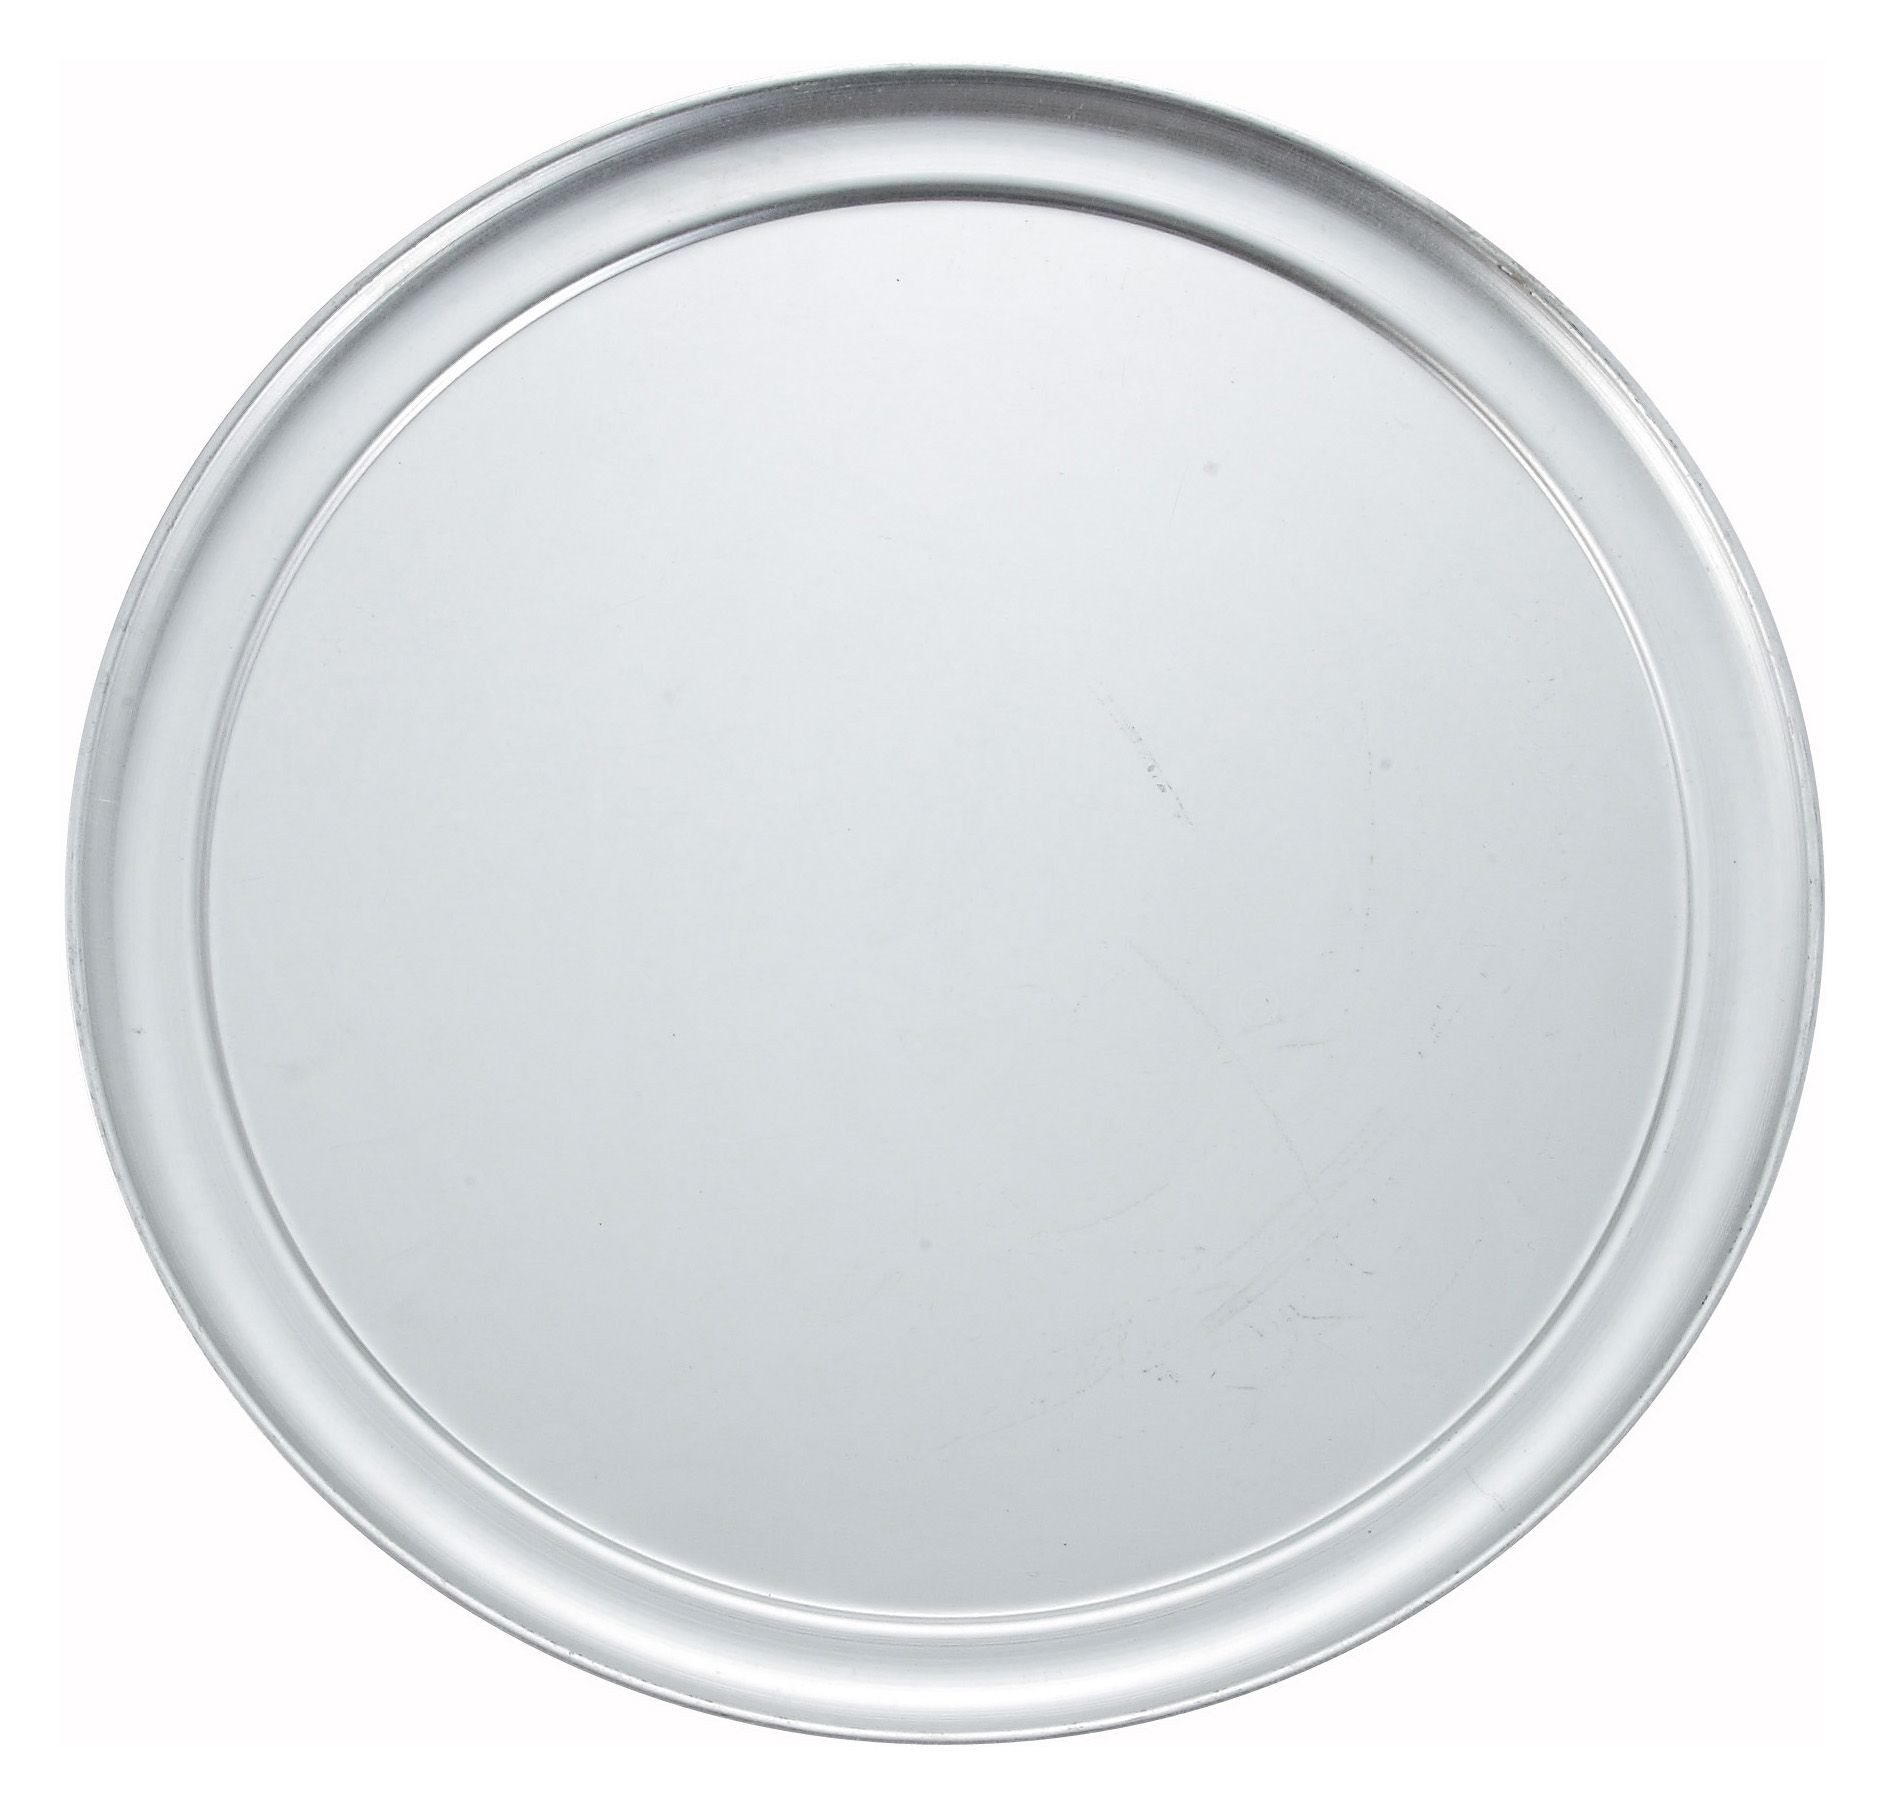 "Winco APZT-16 16"" Round Aluminum Wide Rim Pizza Tray"